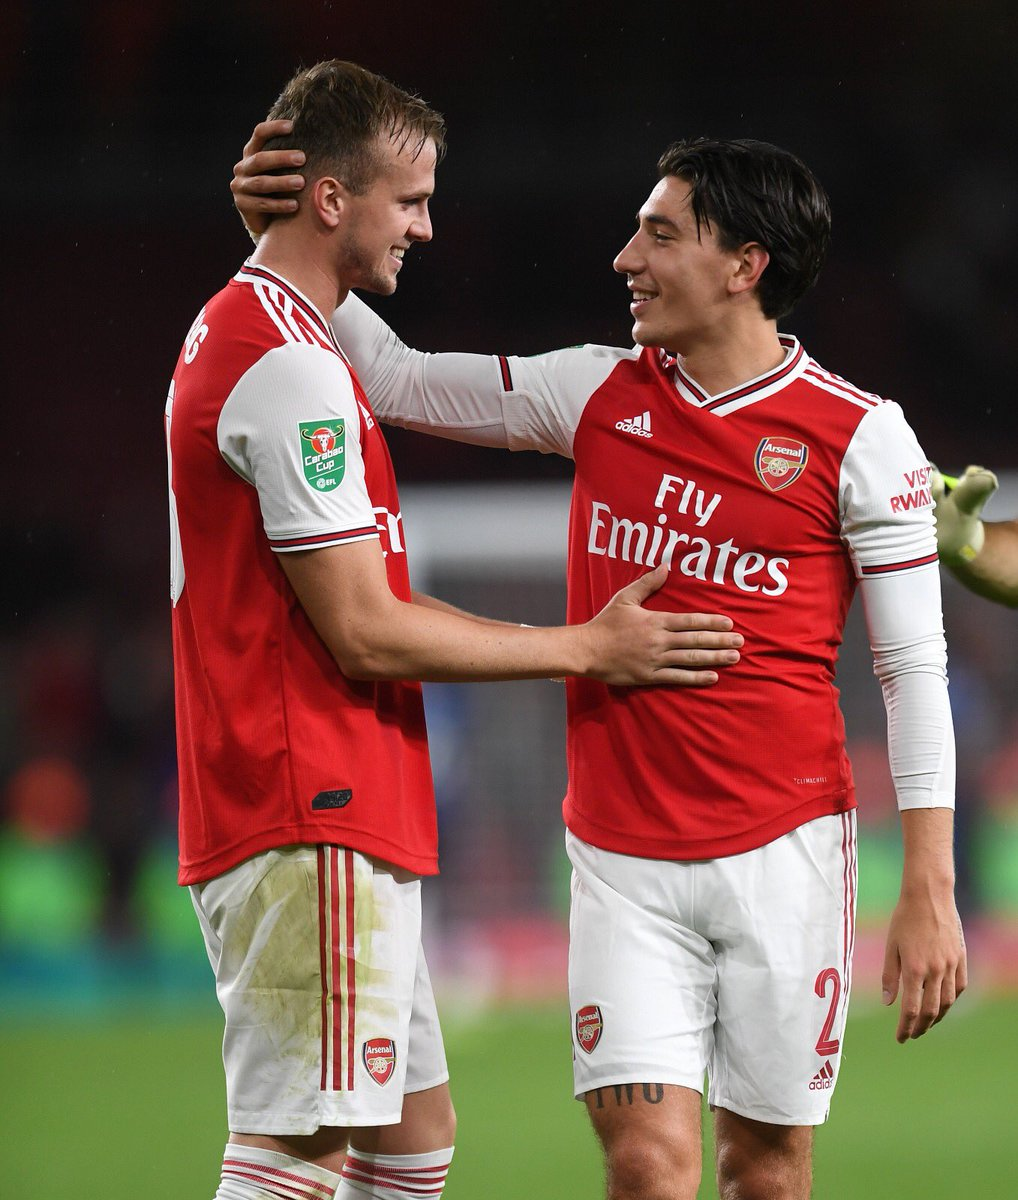 From the bike, to the gym, to the first runs and now back on the pitch together 🙌🏼 @RobHolding95